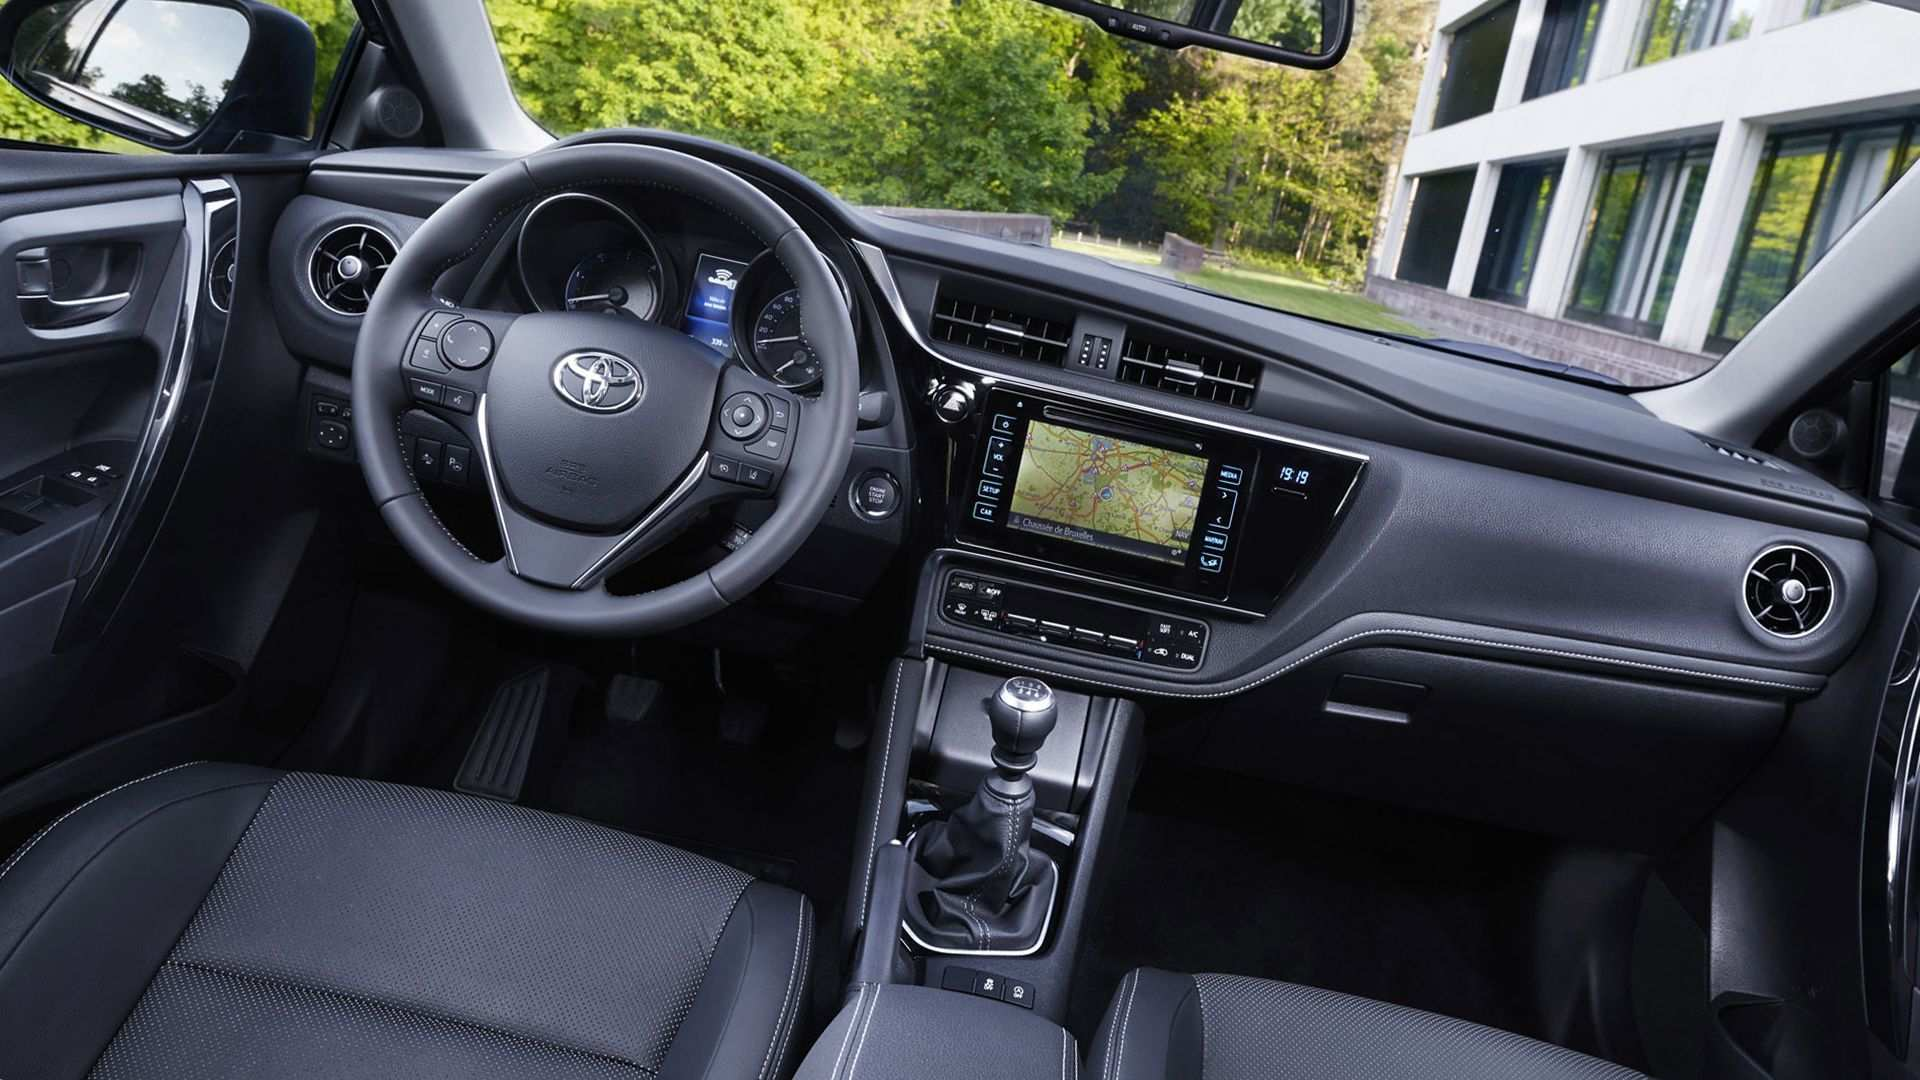 46 Great Toyota Yaris 2019 Interior Images by Toyota Yaris 2019 Interior